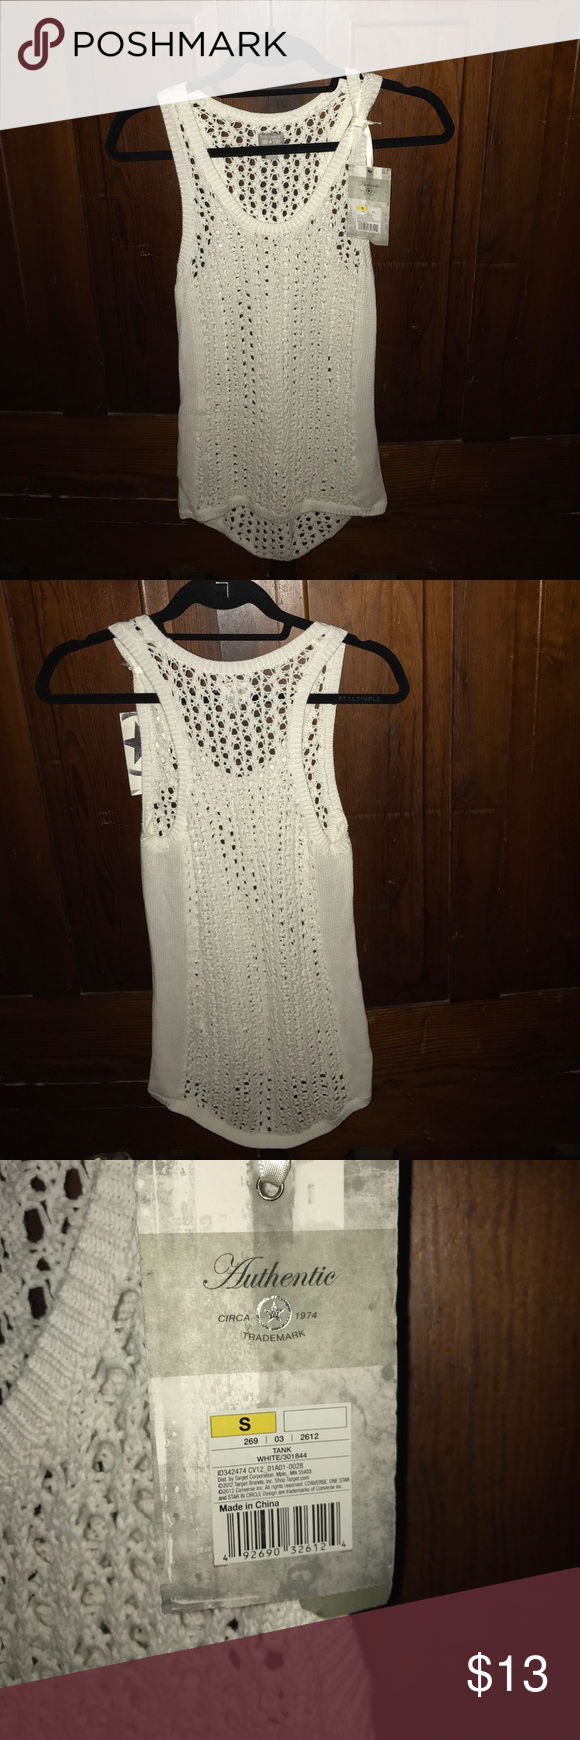 White crochet cover up Brand new, never worn. Got it as a gift but I don't really wear cover ups at all. Converse Tops Tank Tops